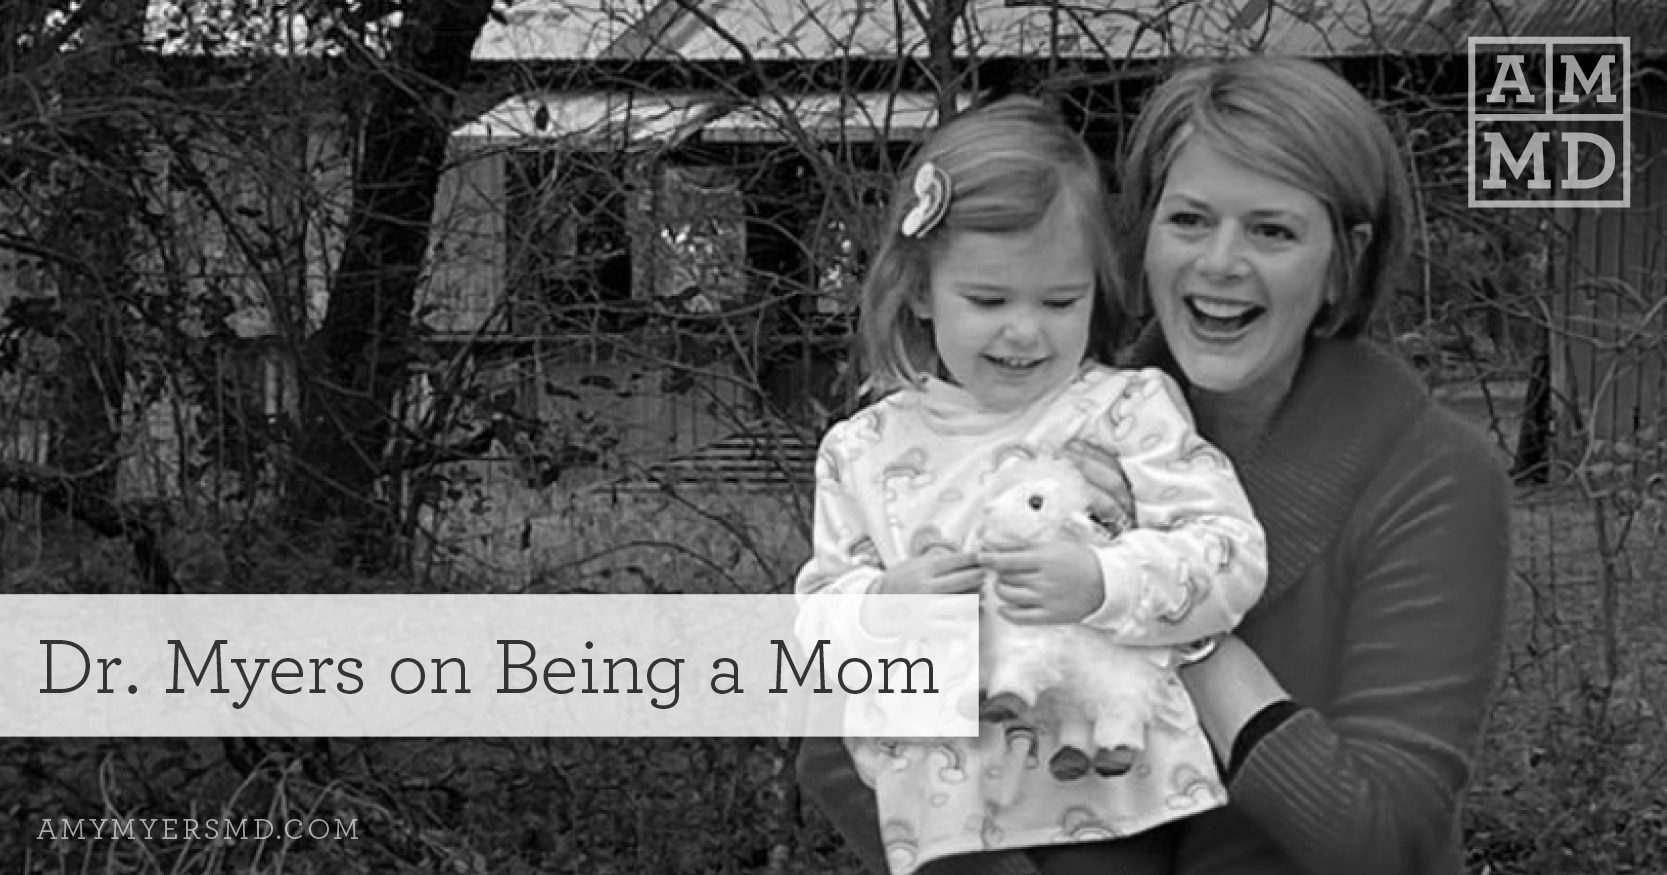 Dr. Myers On Being A Mom - Dr. Myers and Elle - Featured Image - Amy Myers MD